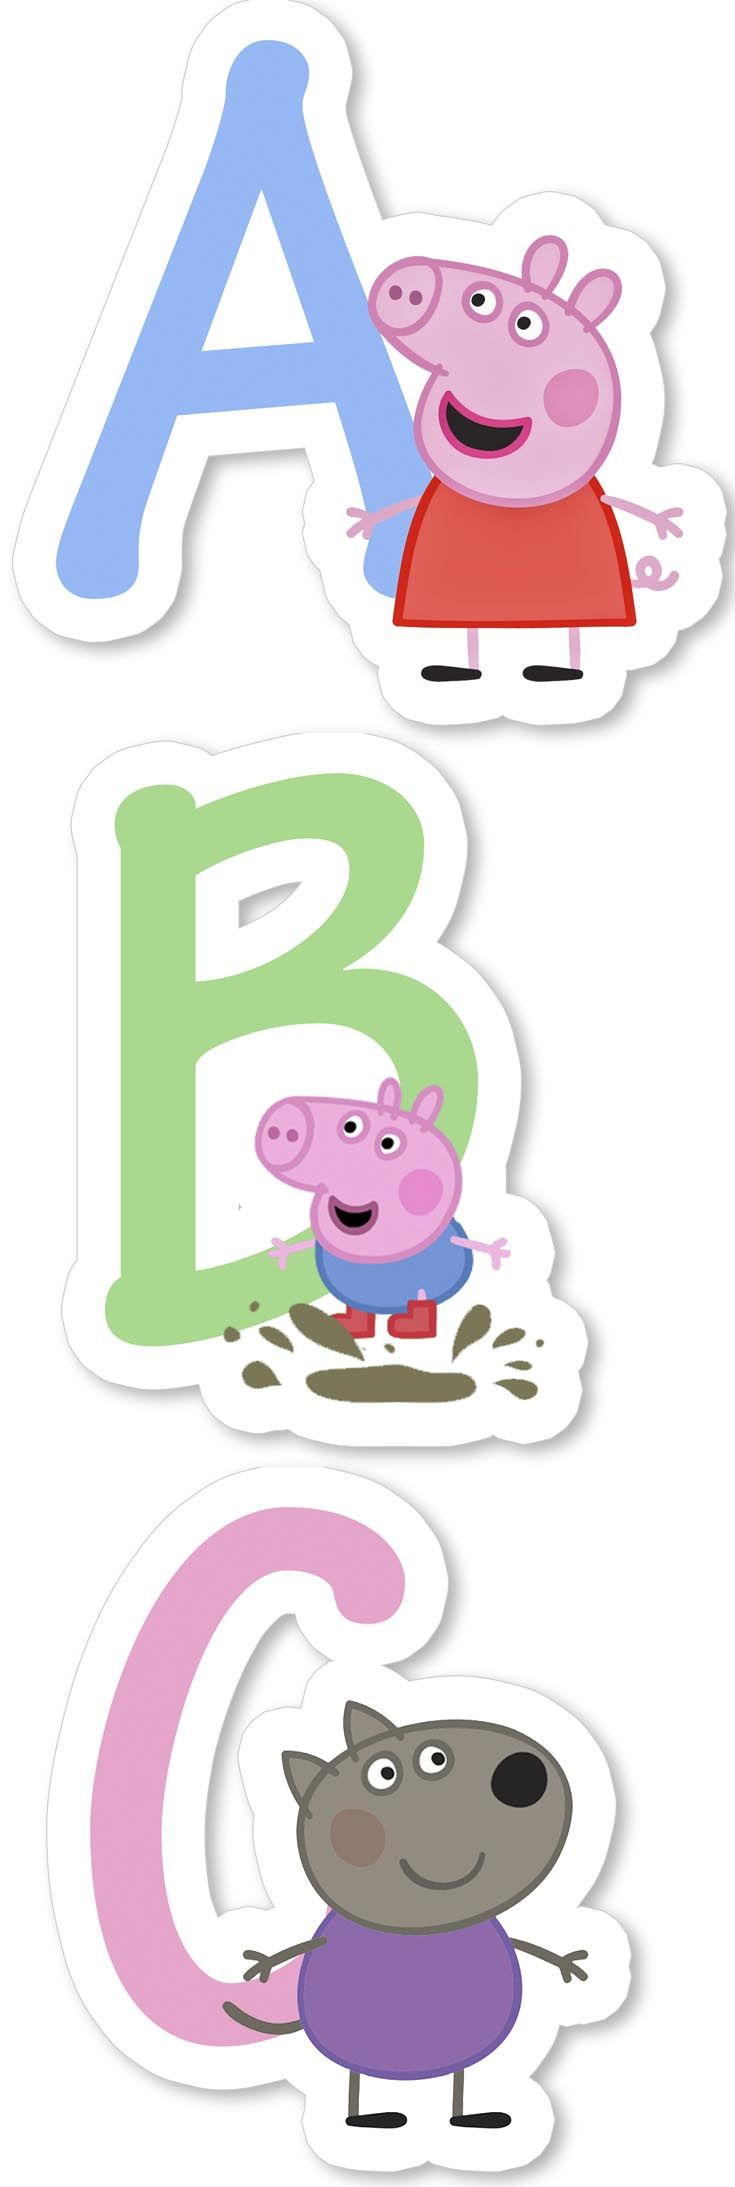 Pe peppa pig online coloring pages - Peppa Pig Alphabet Clipart Birthday Decorations Digital Alphabet Kids Birthday Party Printables Printable Abc Invitations Paper Png